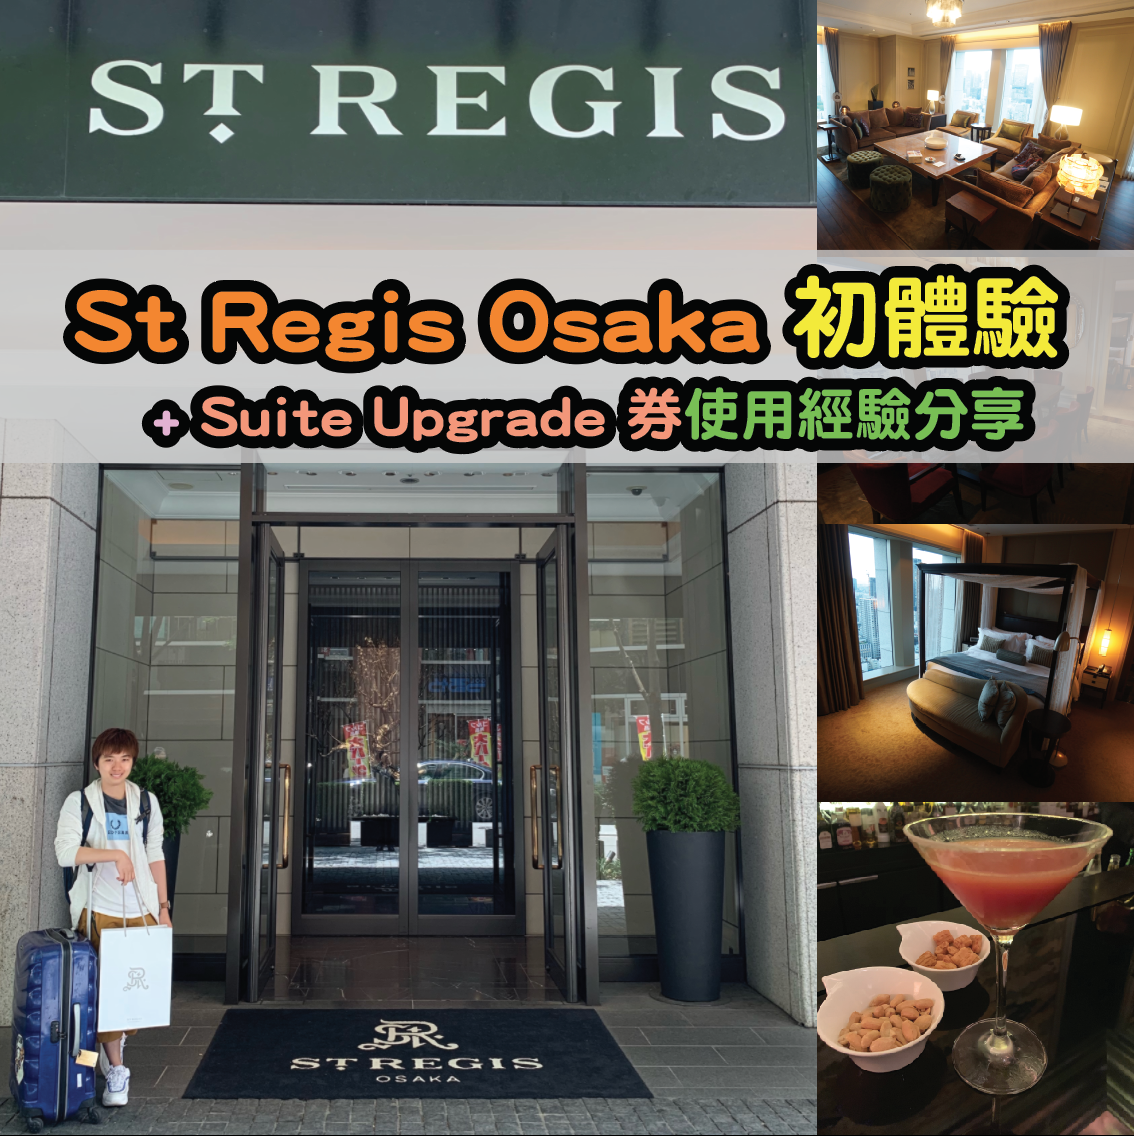 The St Regis Osaka Matsu Suite 初體驗及Marriott Bonvoy Suite Upgrade Coupon 使用經驗分享!